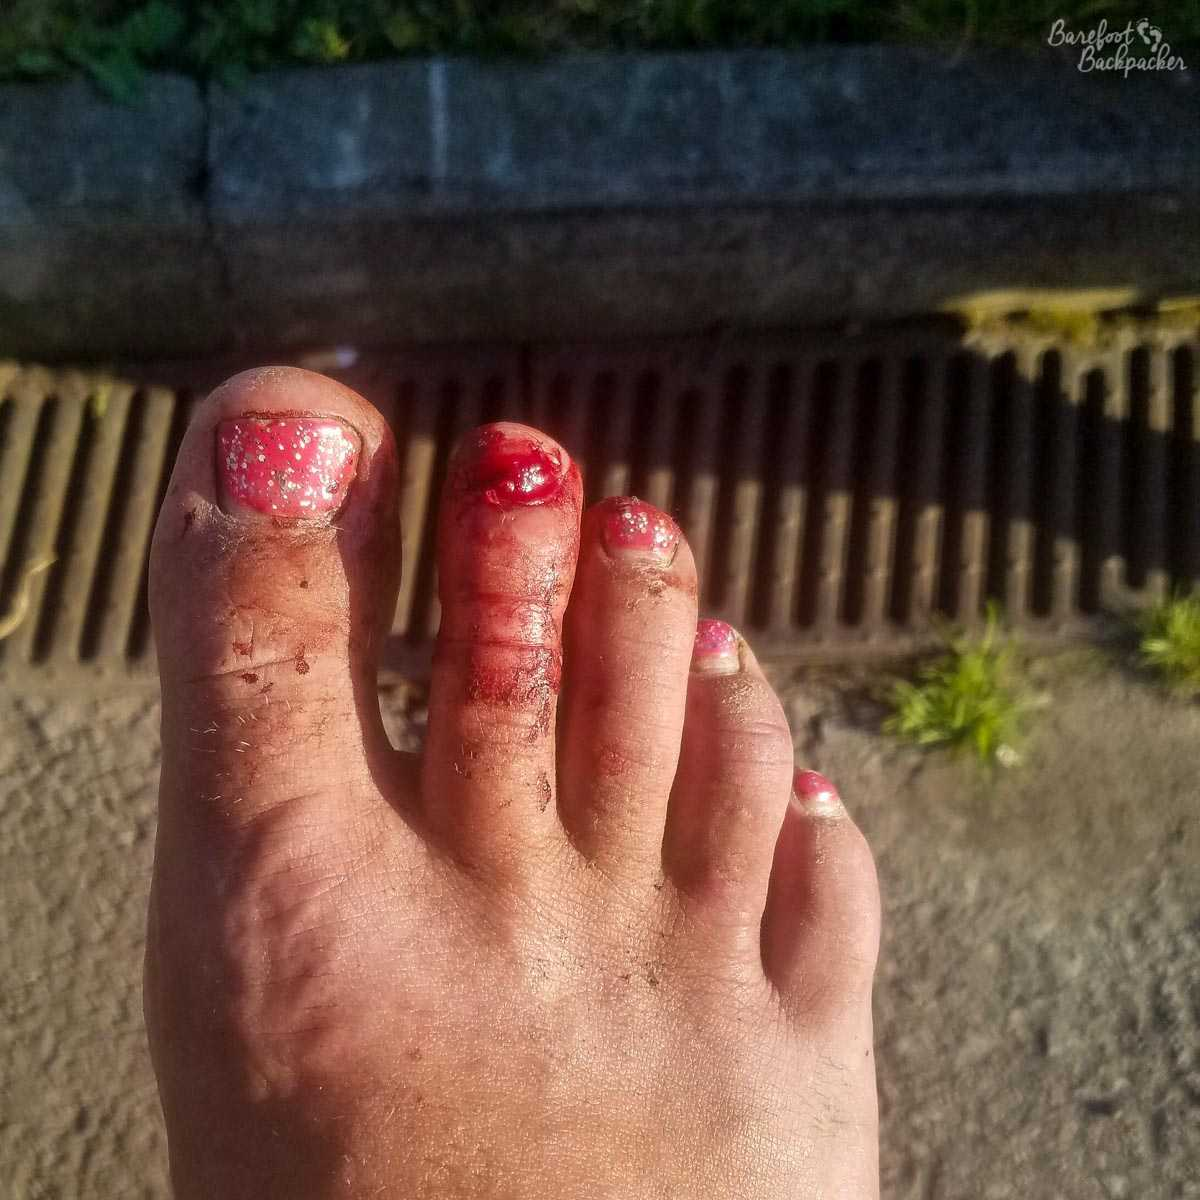 What a toe with a ripped-off toenail looks like